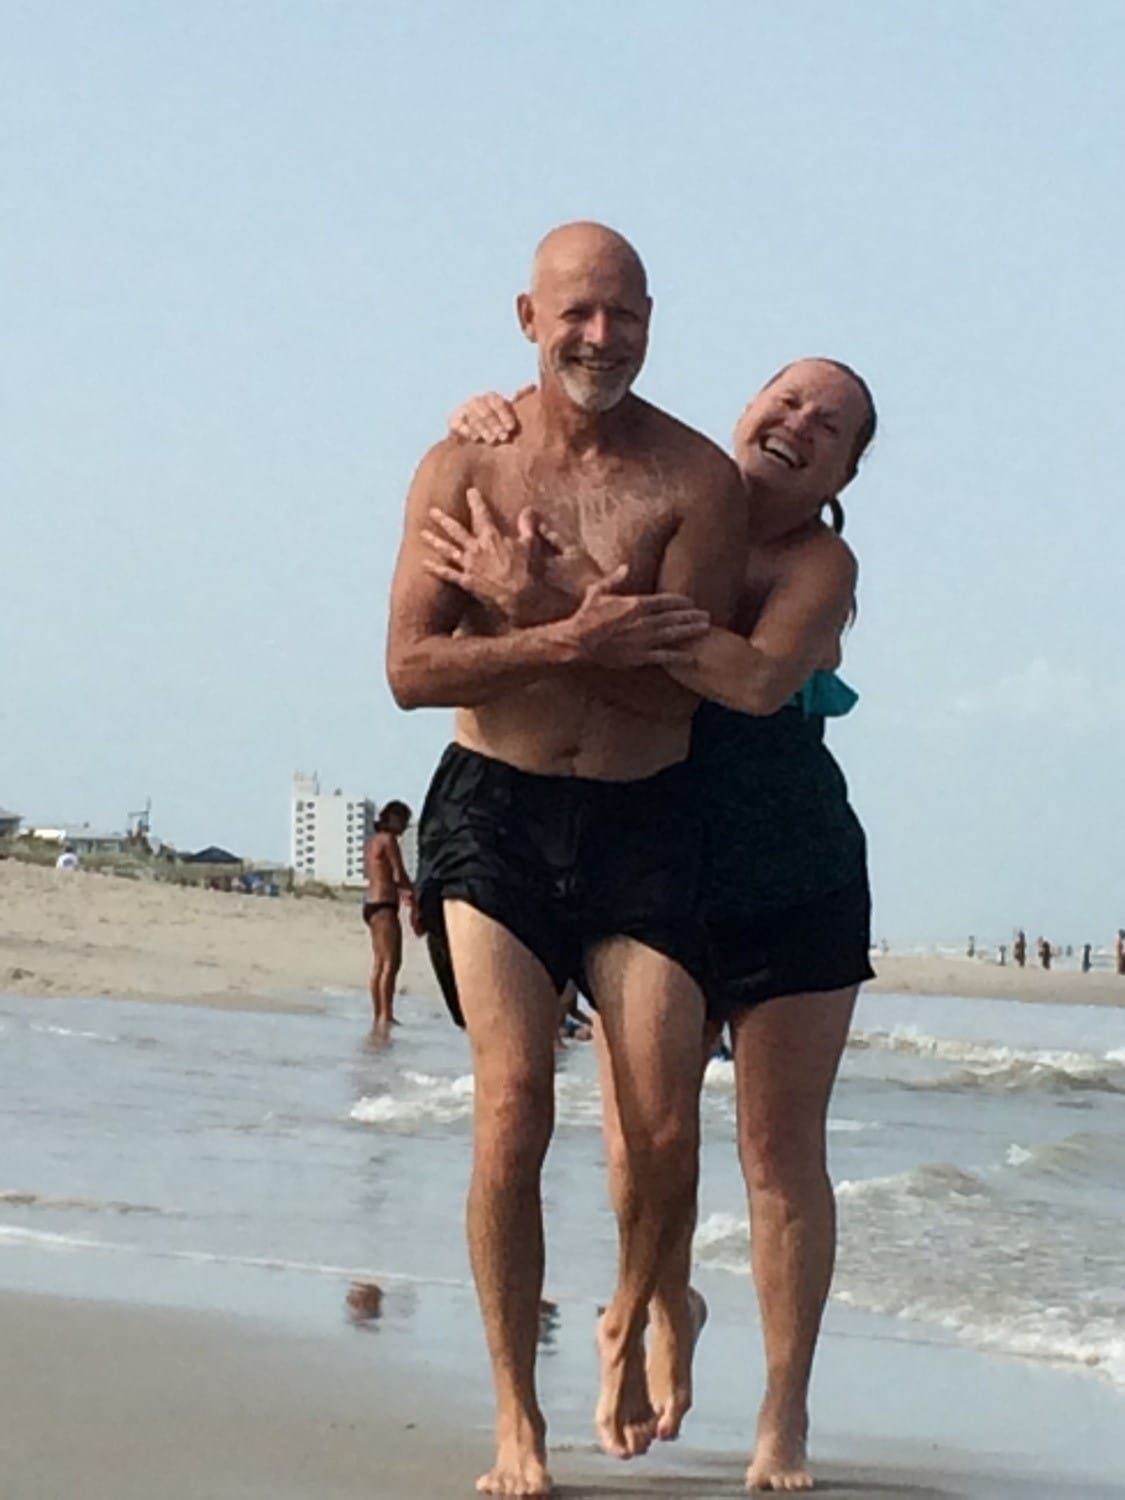 Candy And Dan from Kure Beach